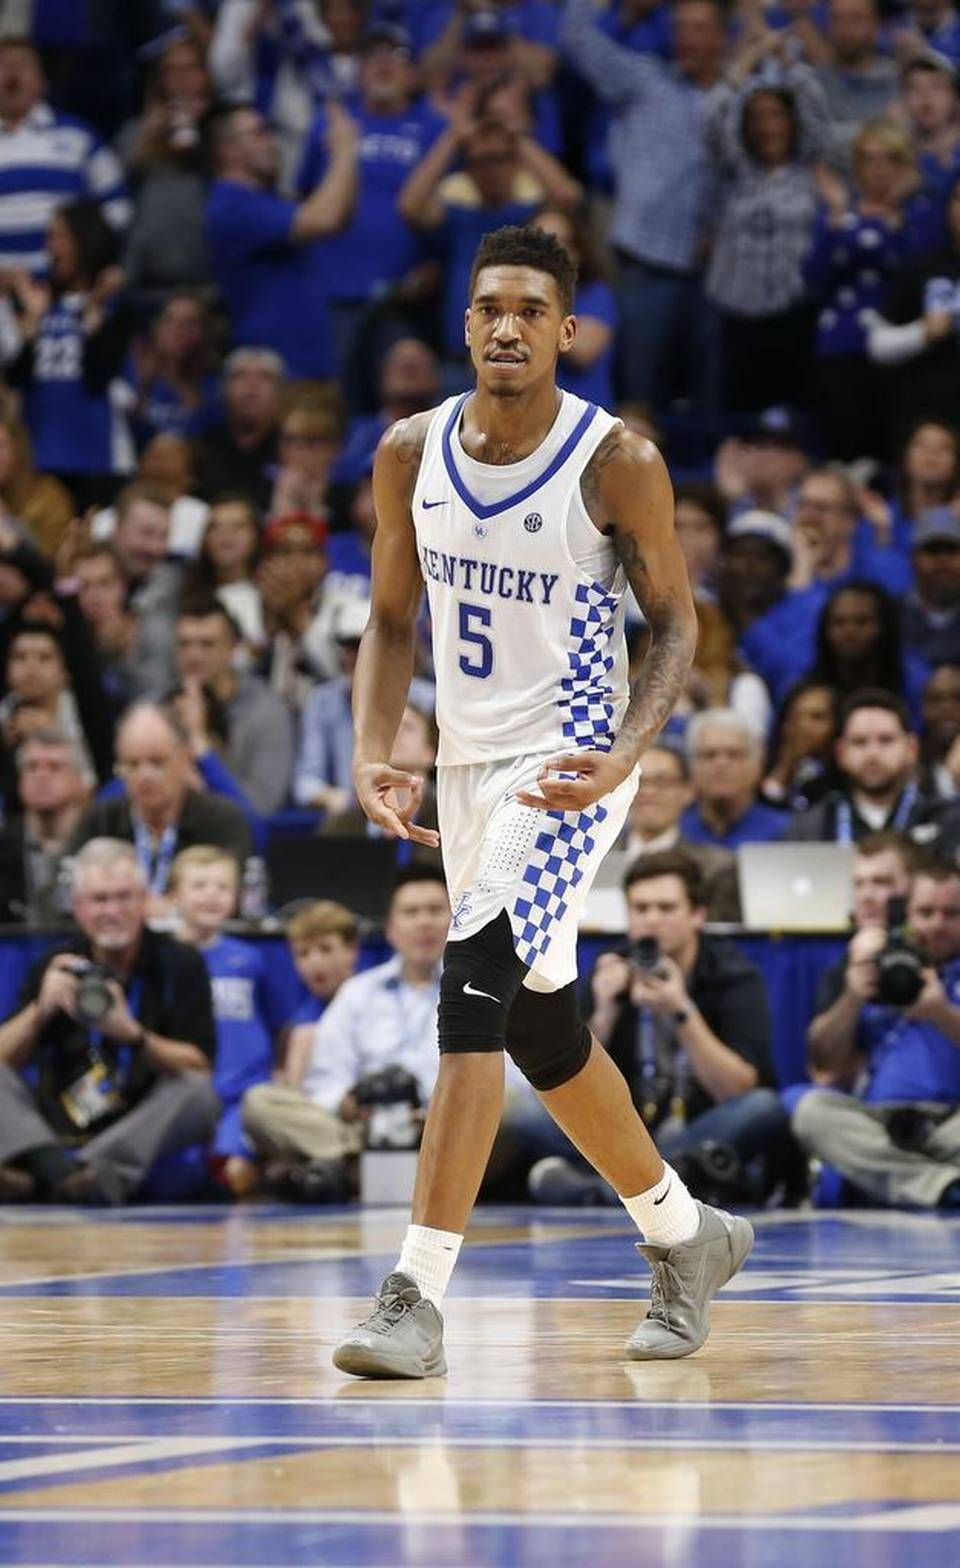 Kentucky Guard Malik Monk 5 Made A 3 With His Fingers After Hitting A Three Pointer Late In The Game Kentucky Basketball Kentucky Sports College Basketball